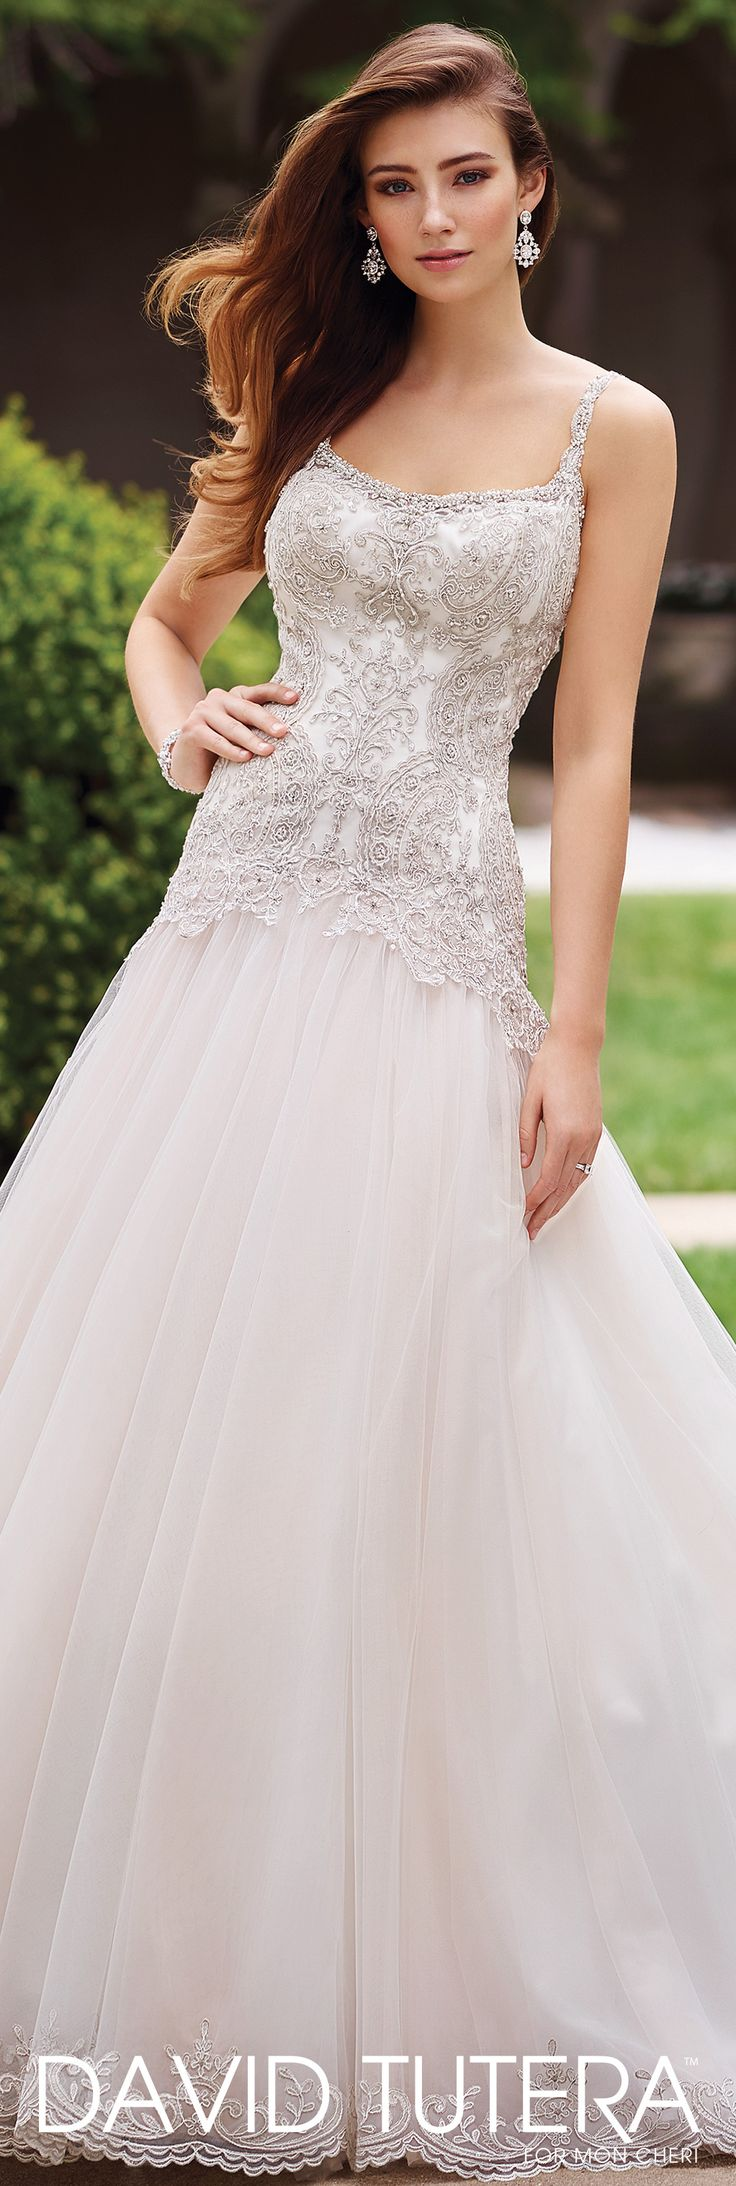 David Tutera for Mon Cheri - 117279 Carmelina - Sleeveless re-embroidered Alençon metallic lace on tulle over satin A-line gown with hand-beaded thin shoulder straps and softly curved neckline, beaded lace bodice with dropped waist, low scoop back finished with beaded illusion and pearl buttons, full tulle skirt with scalloped lace hemline and chapel length train.Sizes: 0 – 20, 18W – 26WColors: Ivory/Stone, Ivory, White